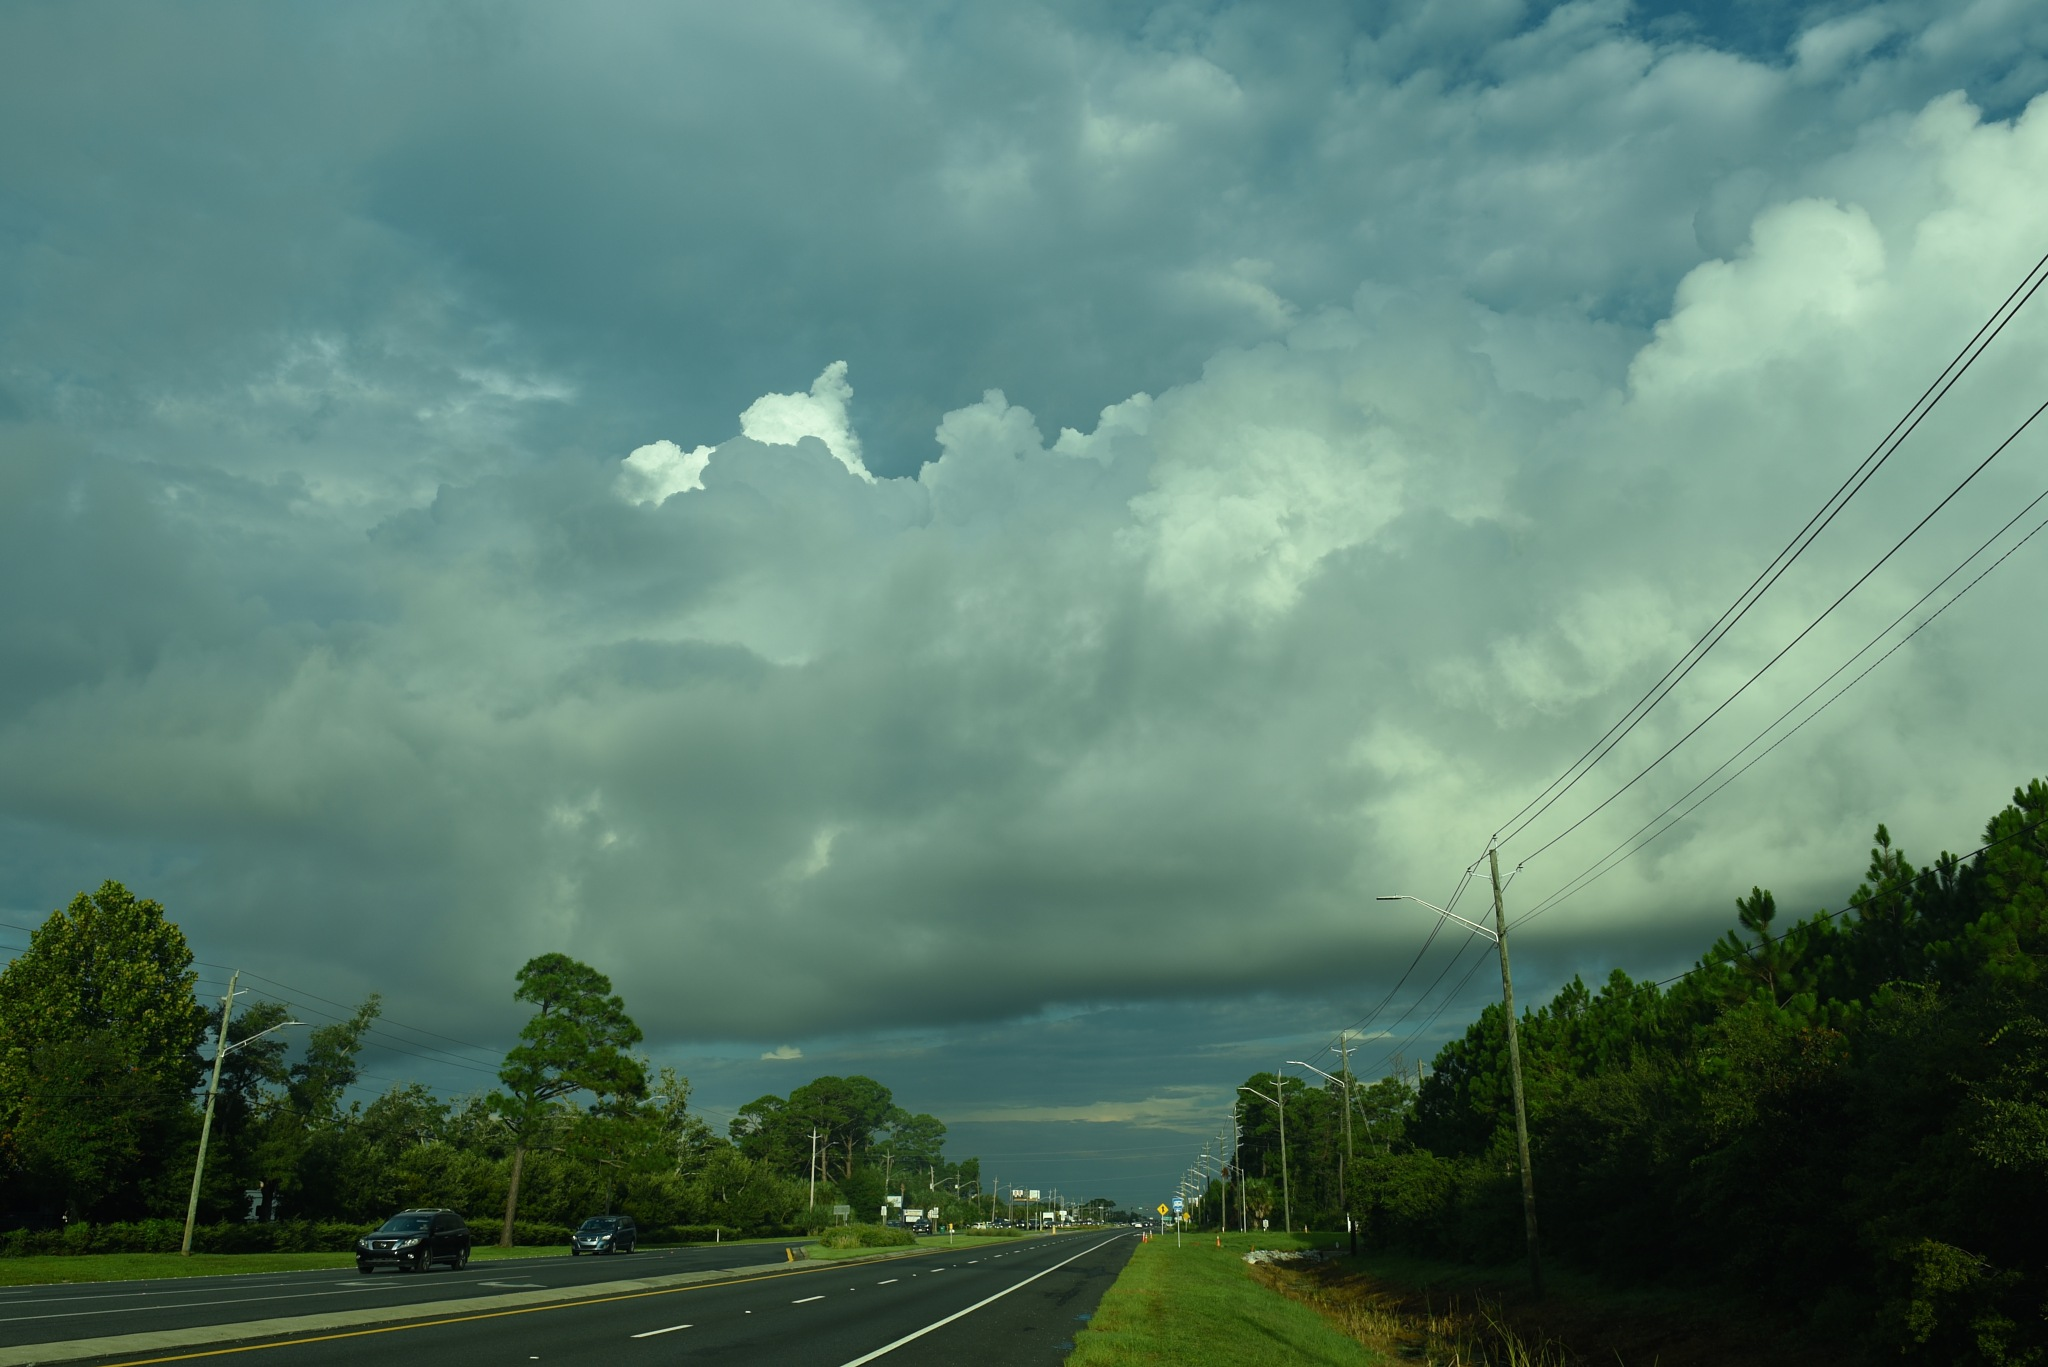 a storm is coming, in Louisiana by Liliane Sticher